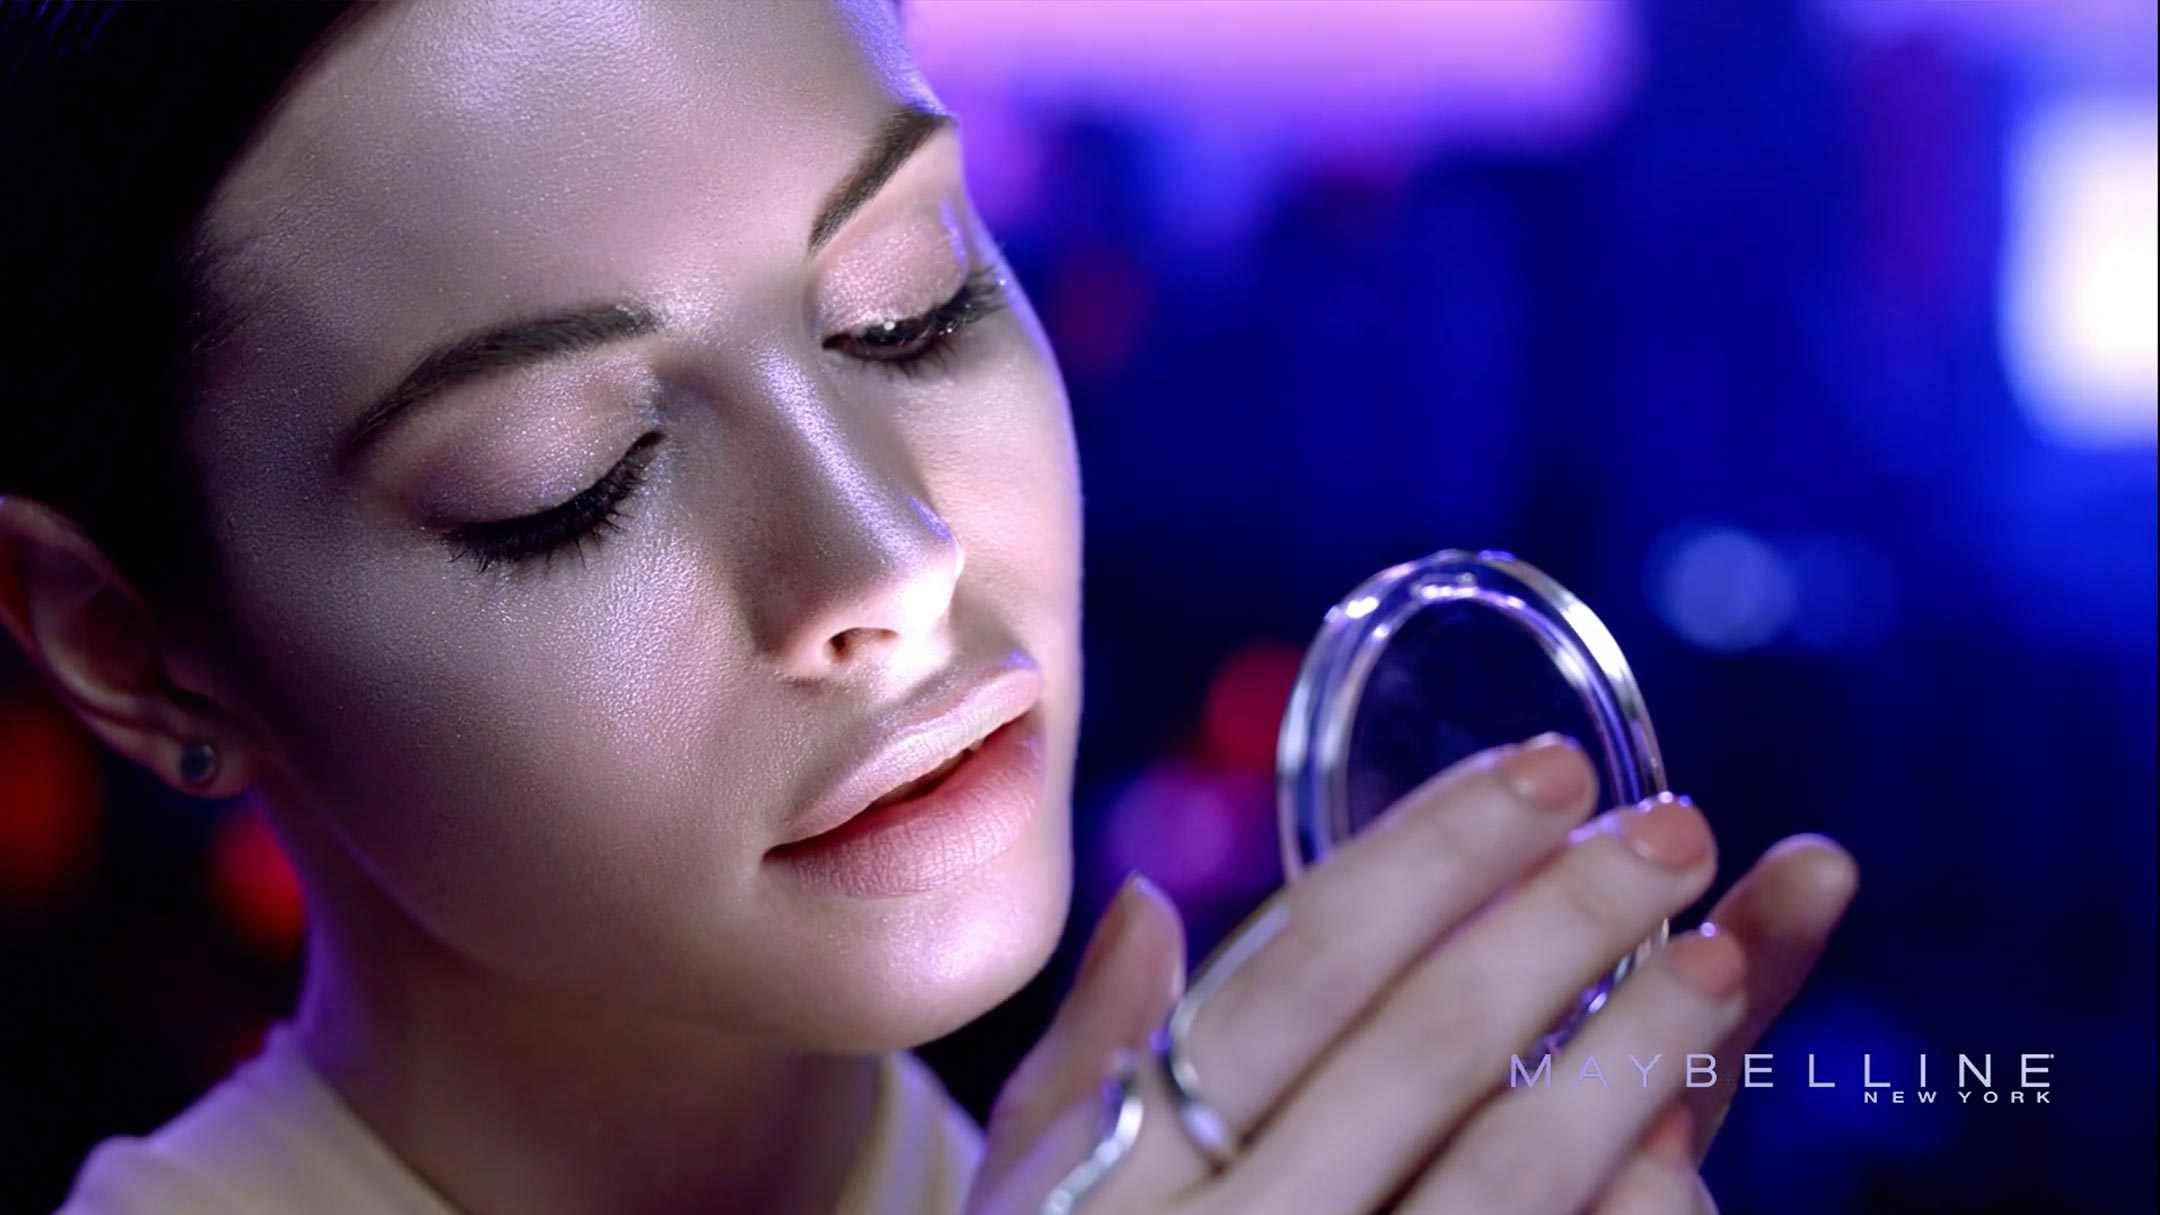 maybelline-master-holographic-lifestyle-videopromoted